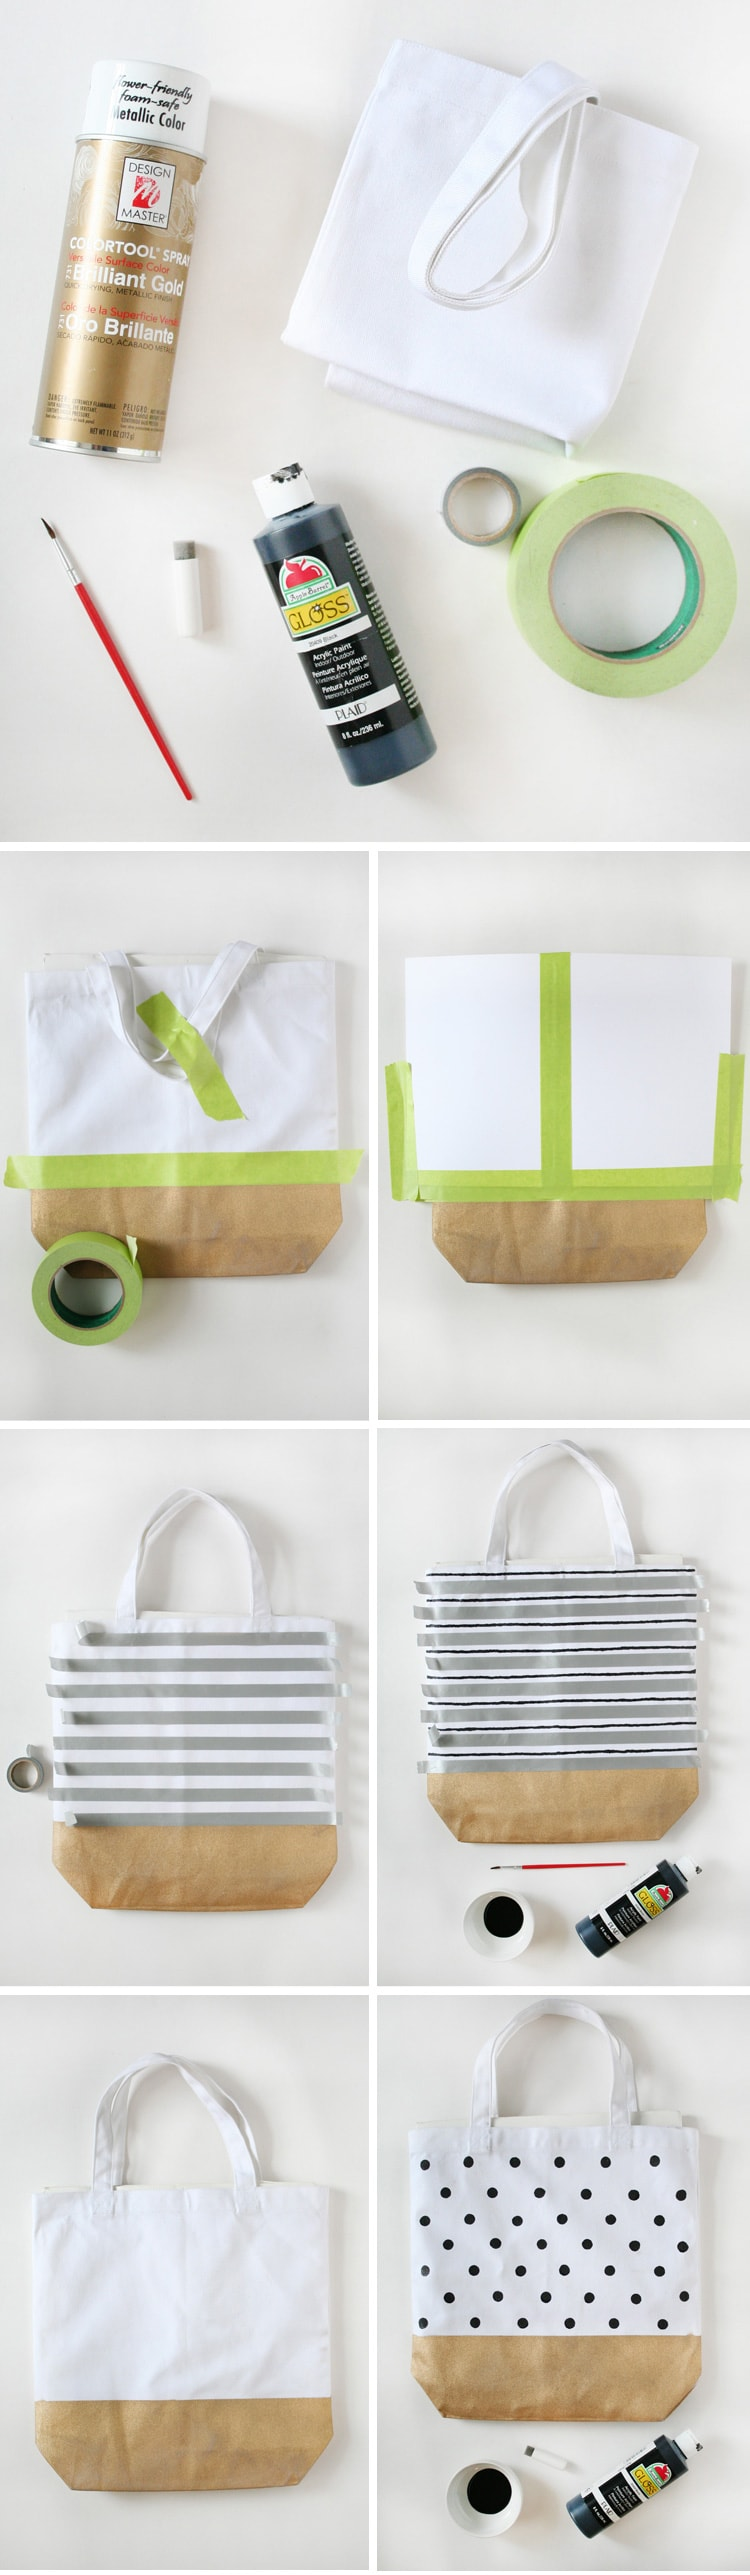 DIY Painted Market Totes